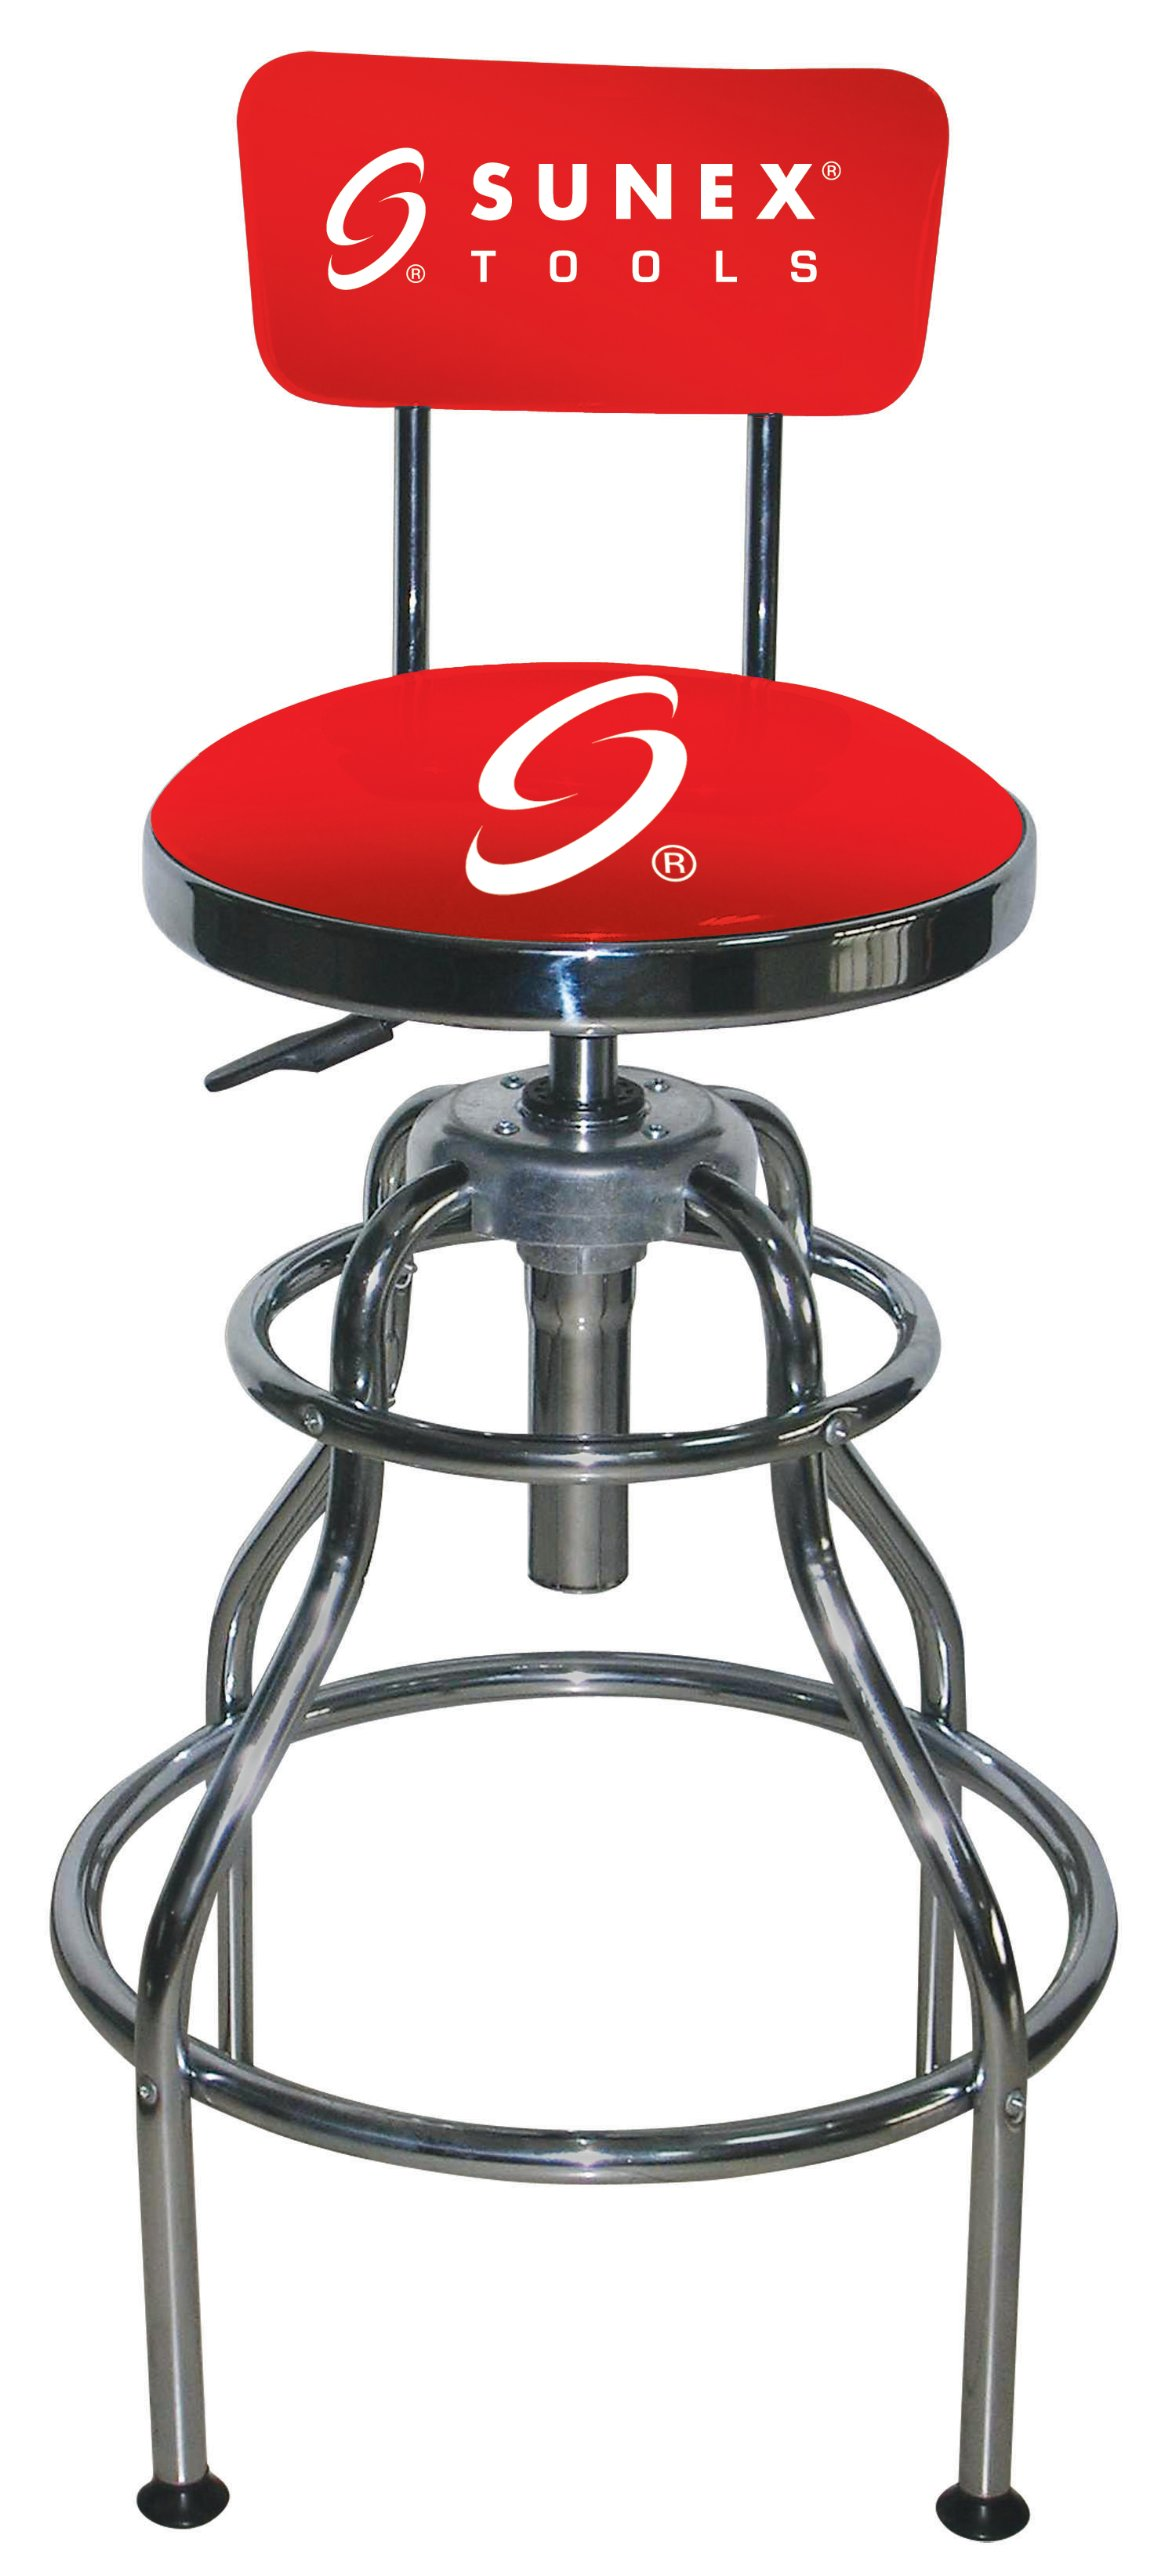 Sunex 8516 Hydraulic Shop Stool, Chrome by Sunex Tools